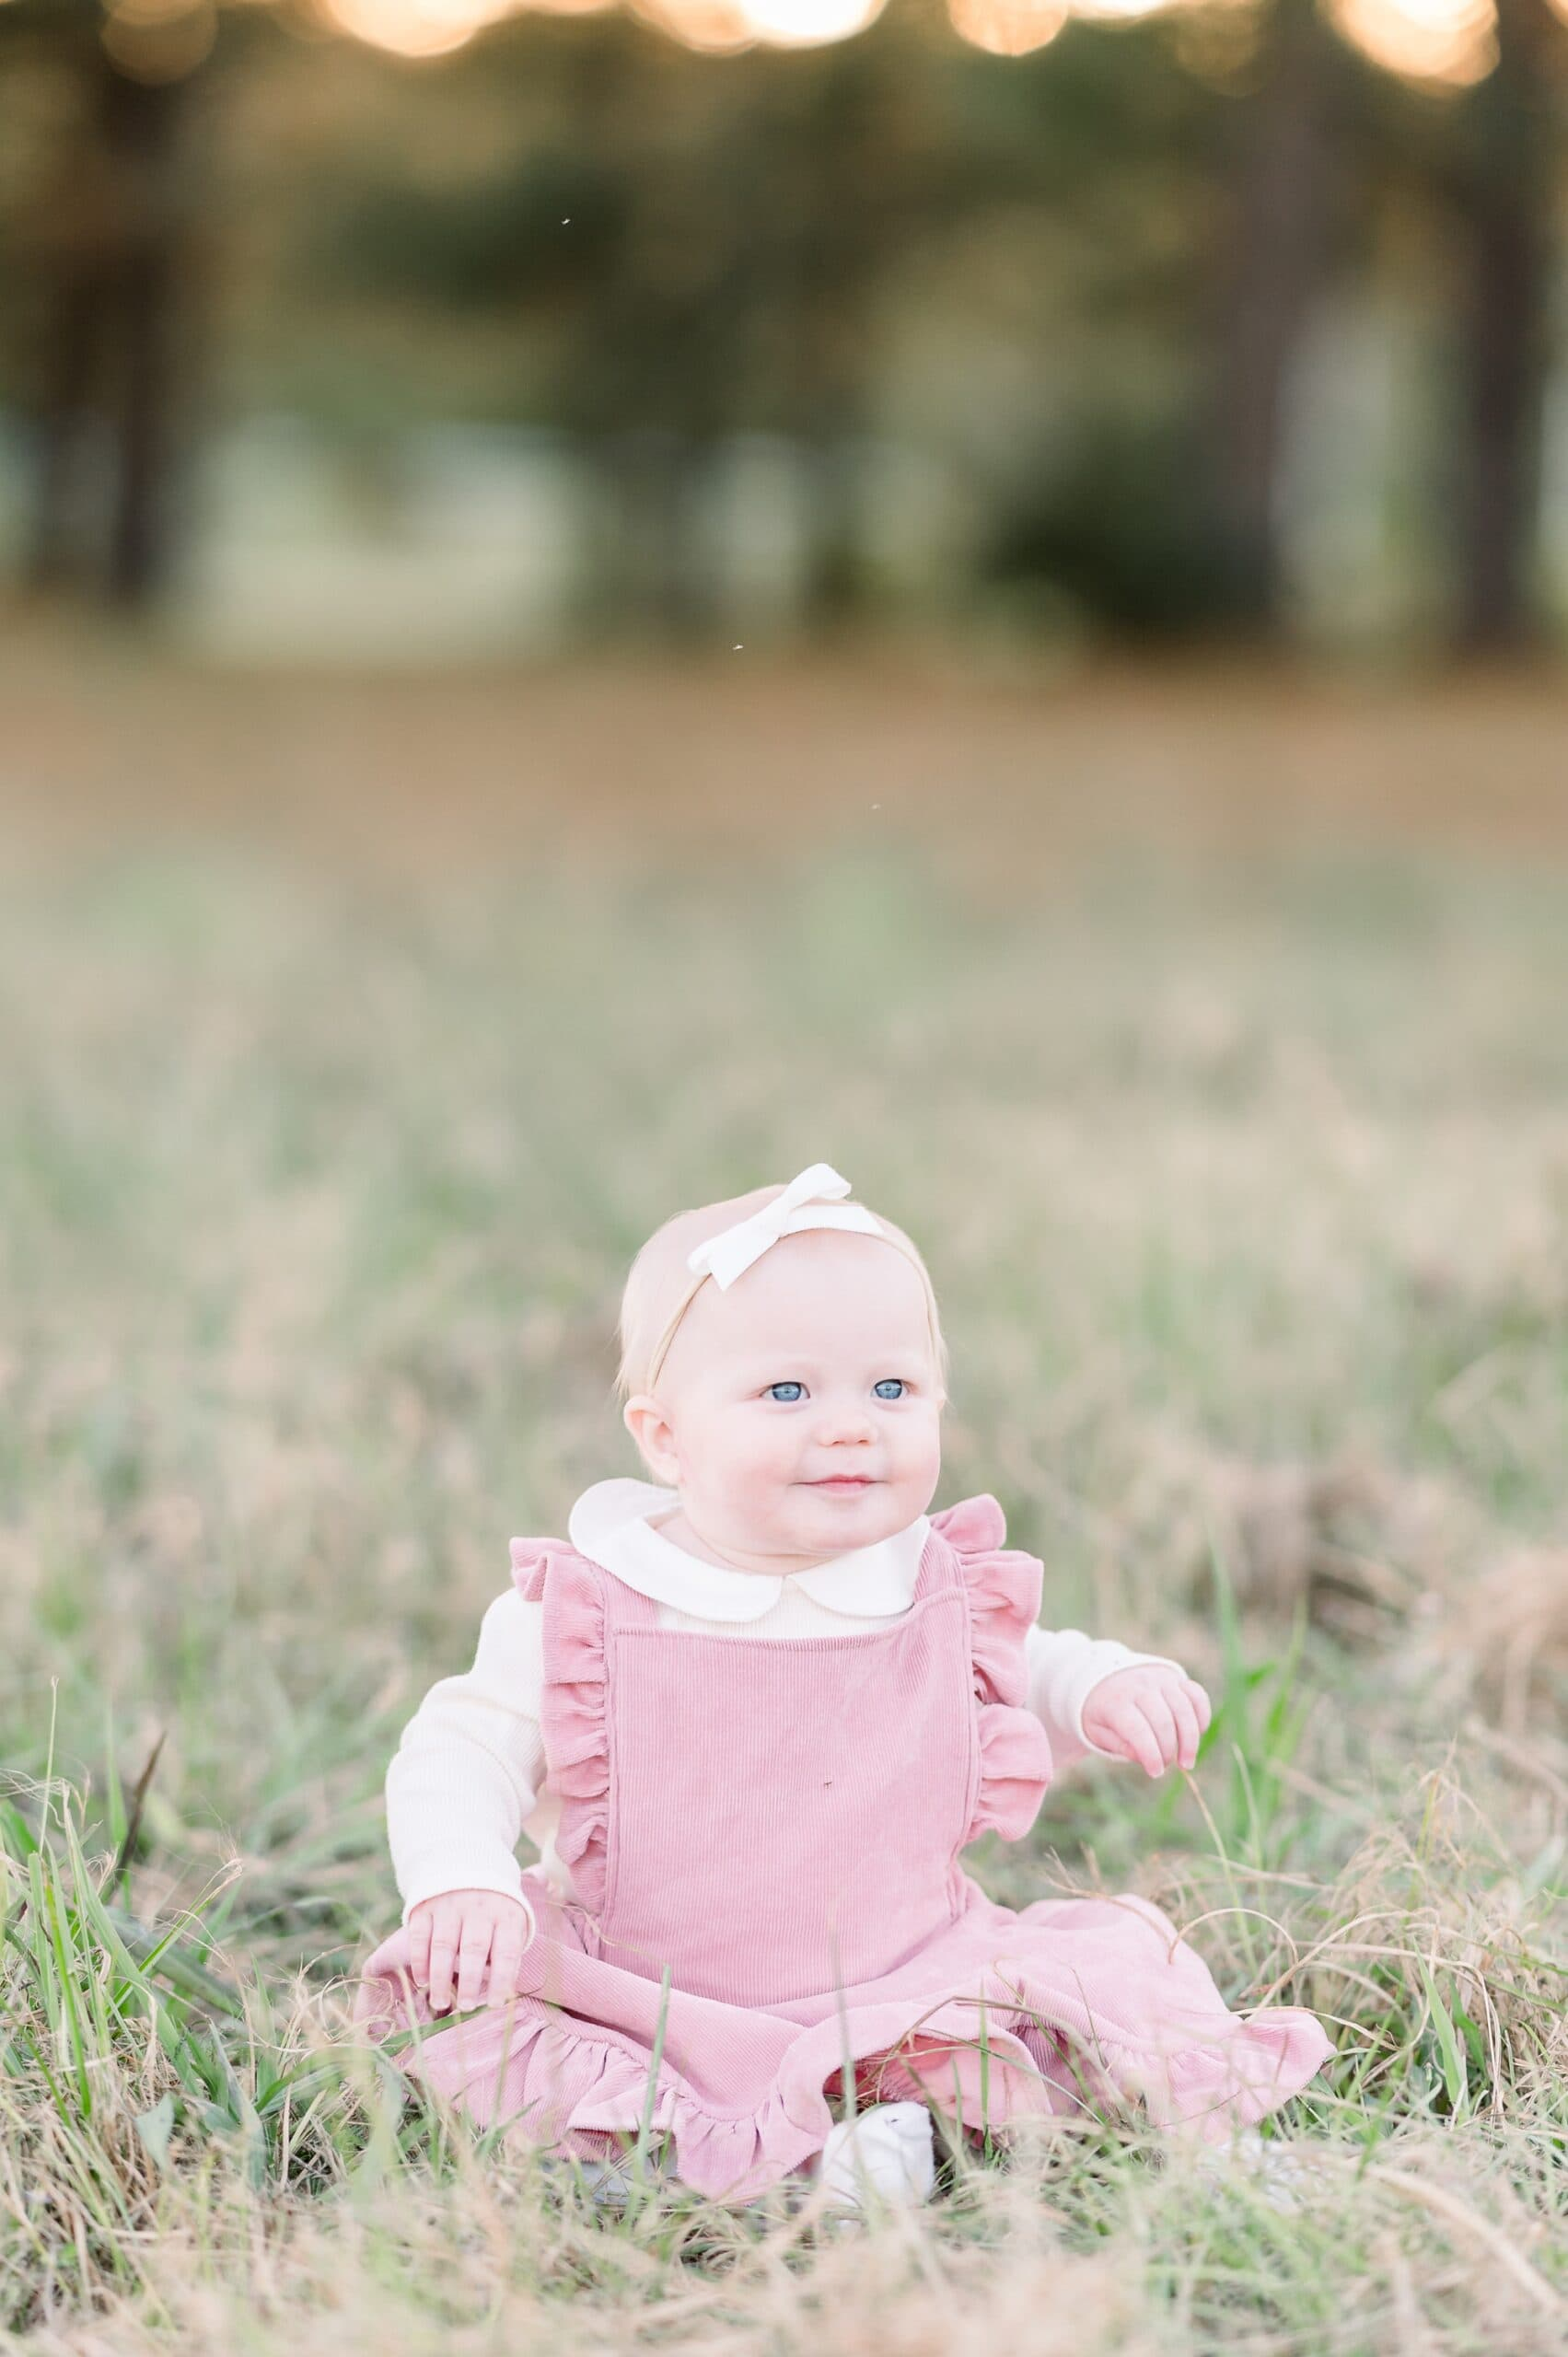 Baby girl in pink dress sitting in beautiful field. Photo by Aimee Hamilton Photography.